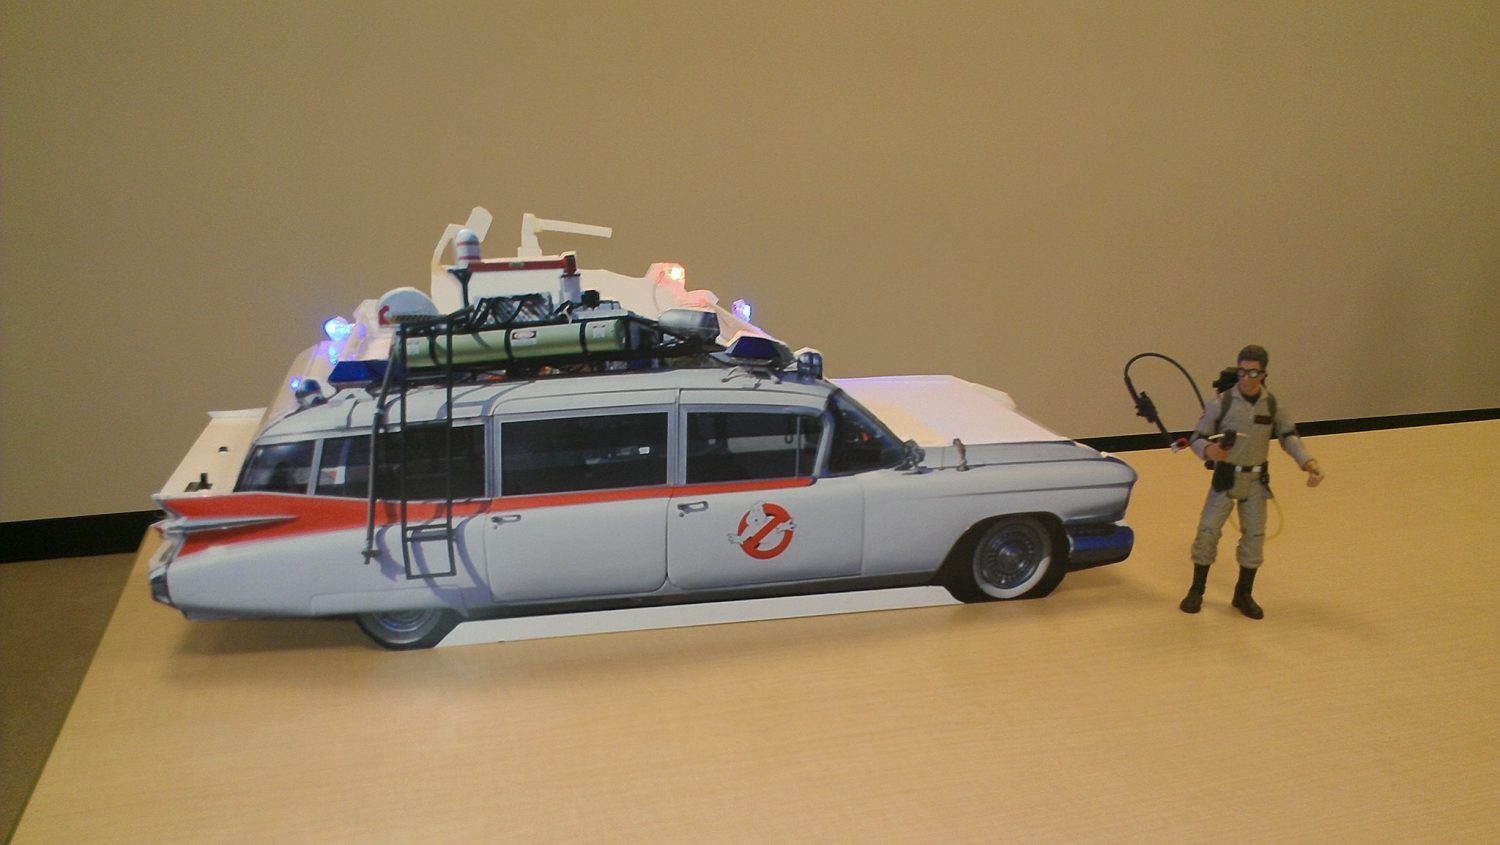 Ghostbusters Ecto 1 Could One Day Happen Toy Hype Usa Lego 75828 Ampamp 2